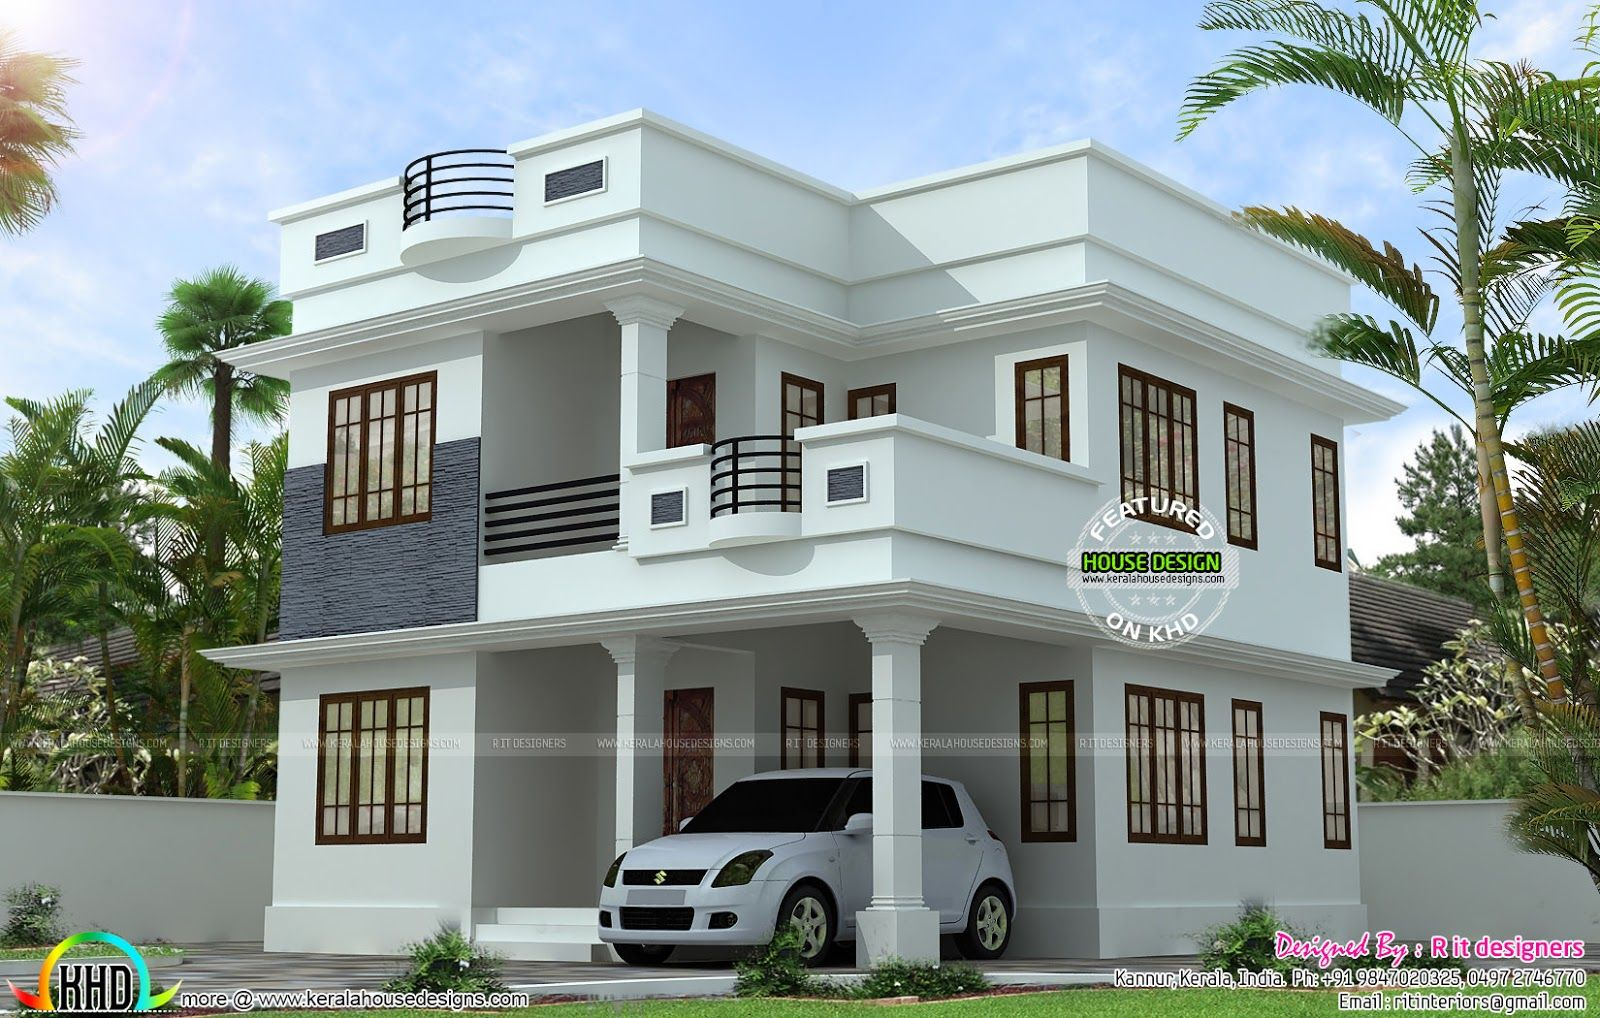 neat and simple small house plan kerala home design and floor plans - Home Design